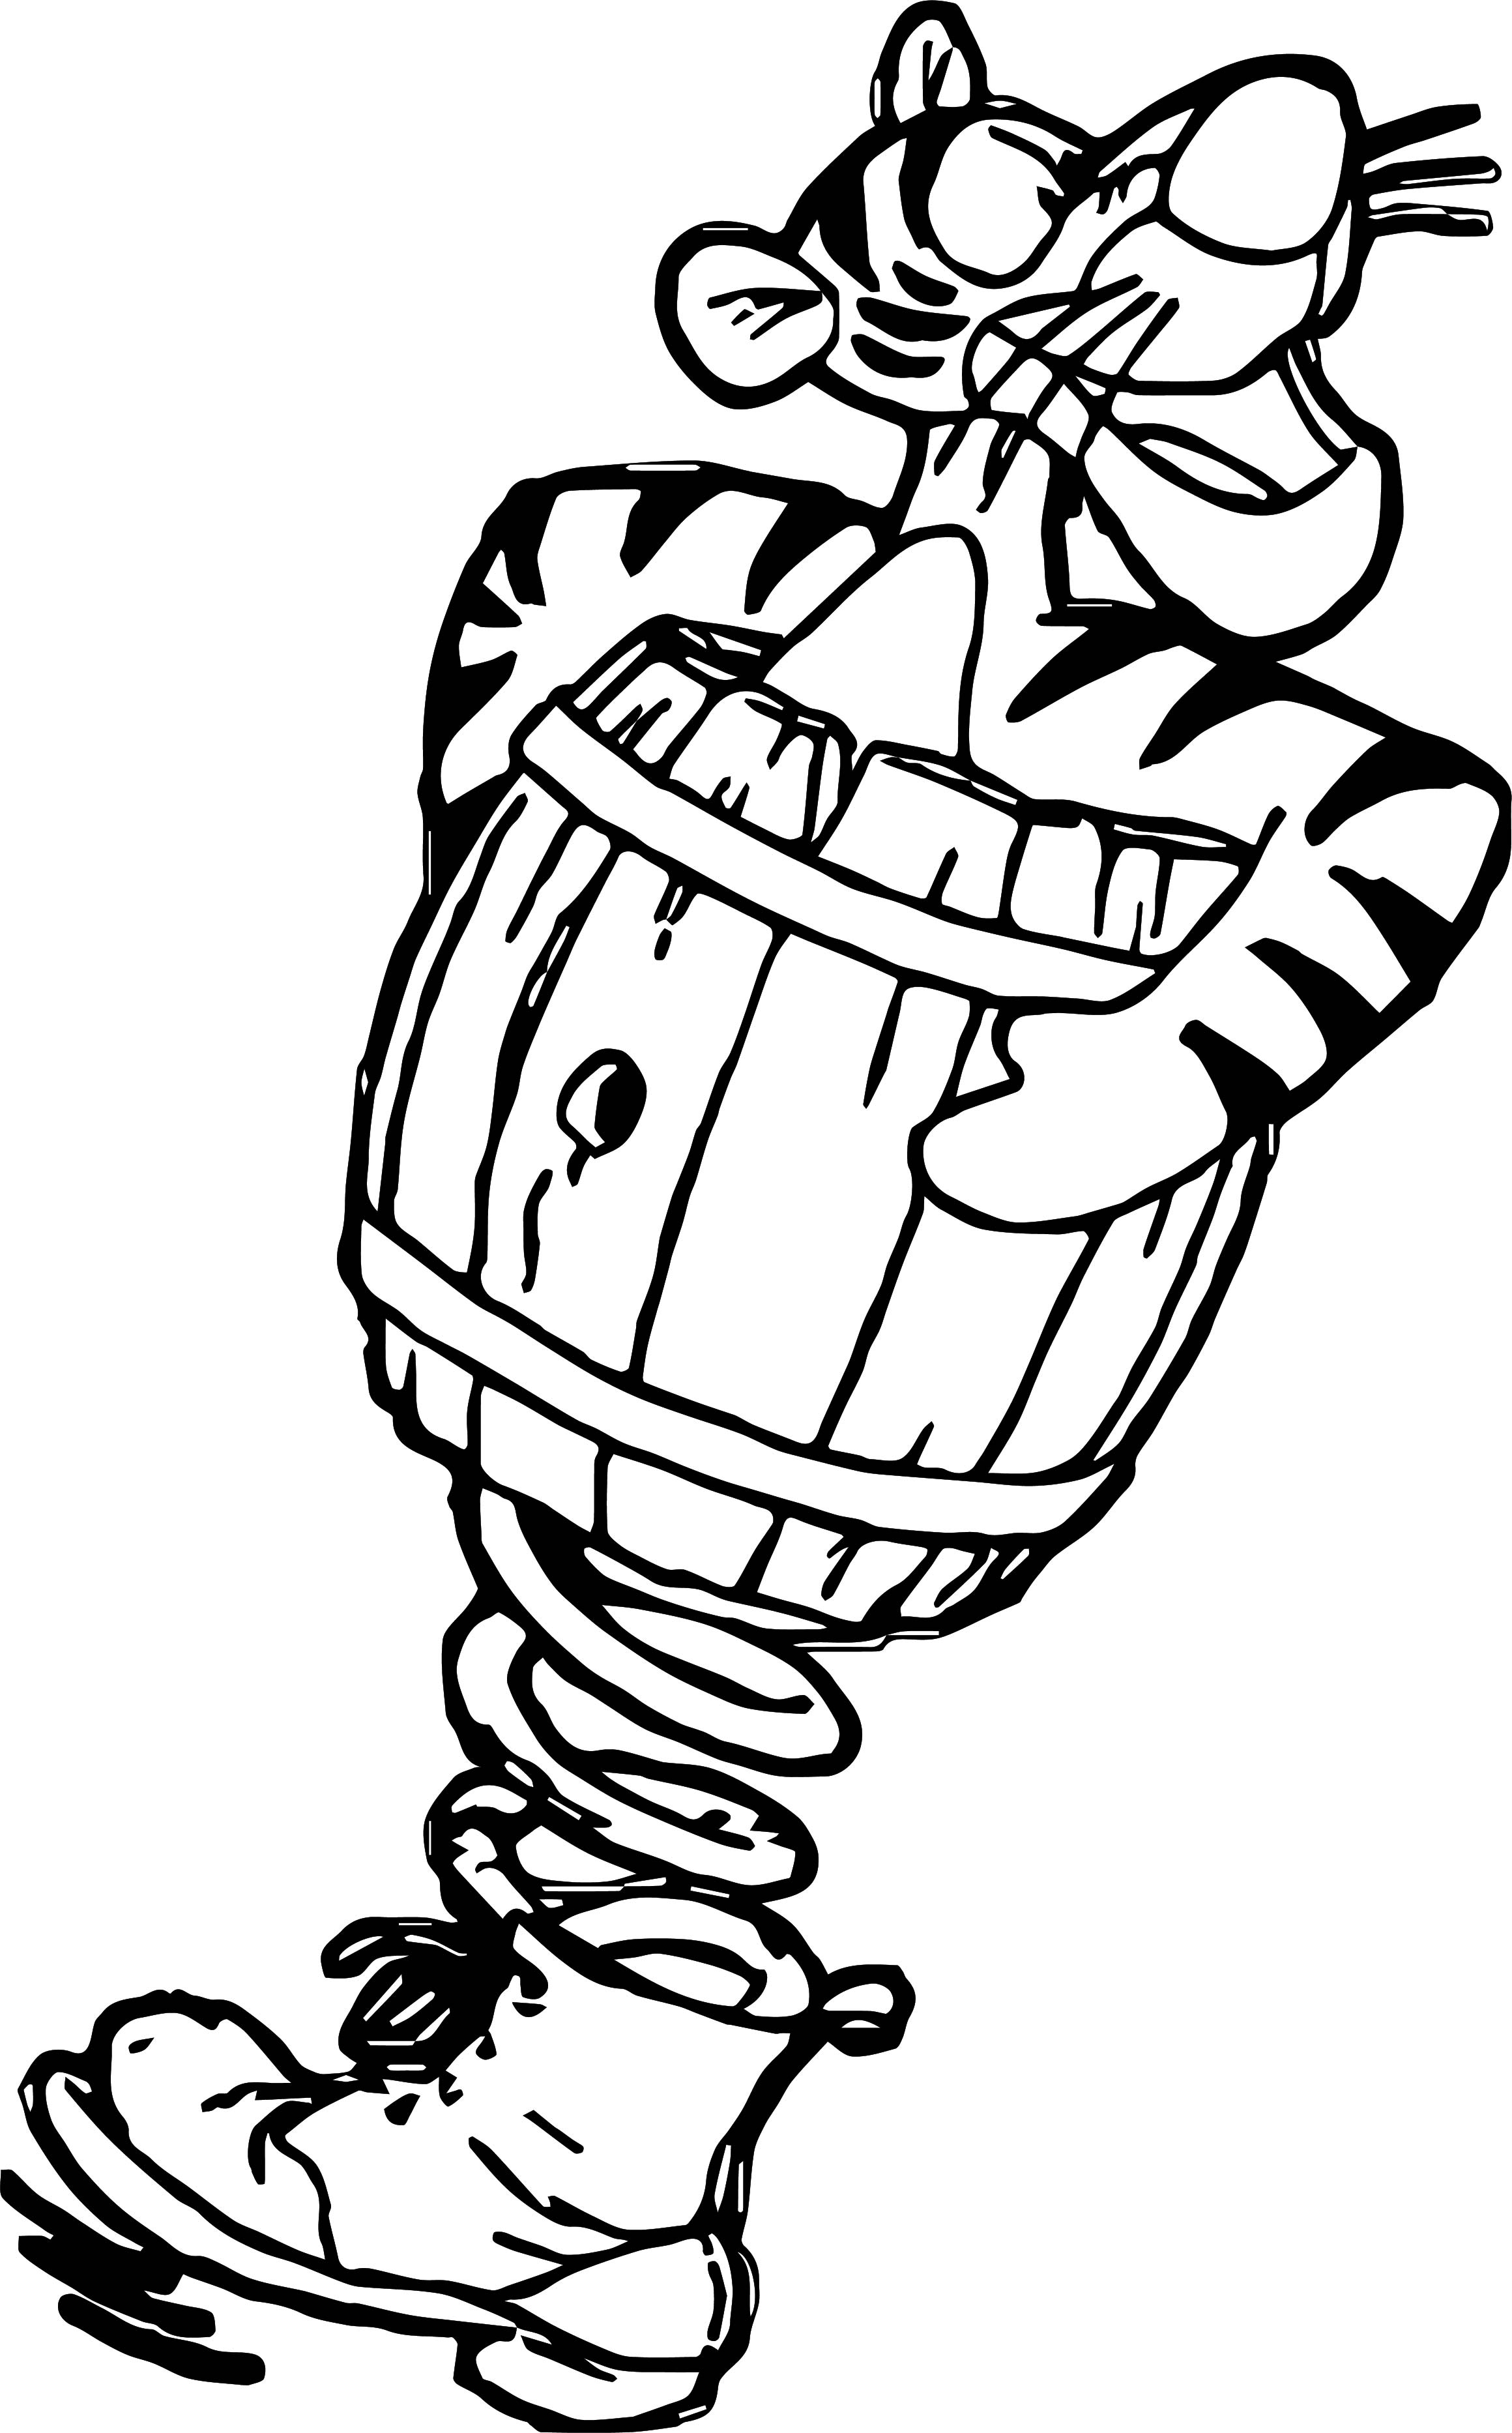 Sticky Tigger Coloring Page Wecoloringpage